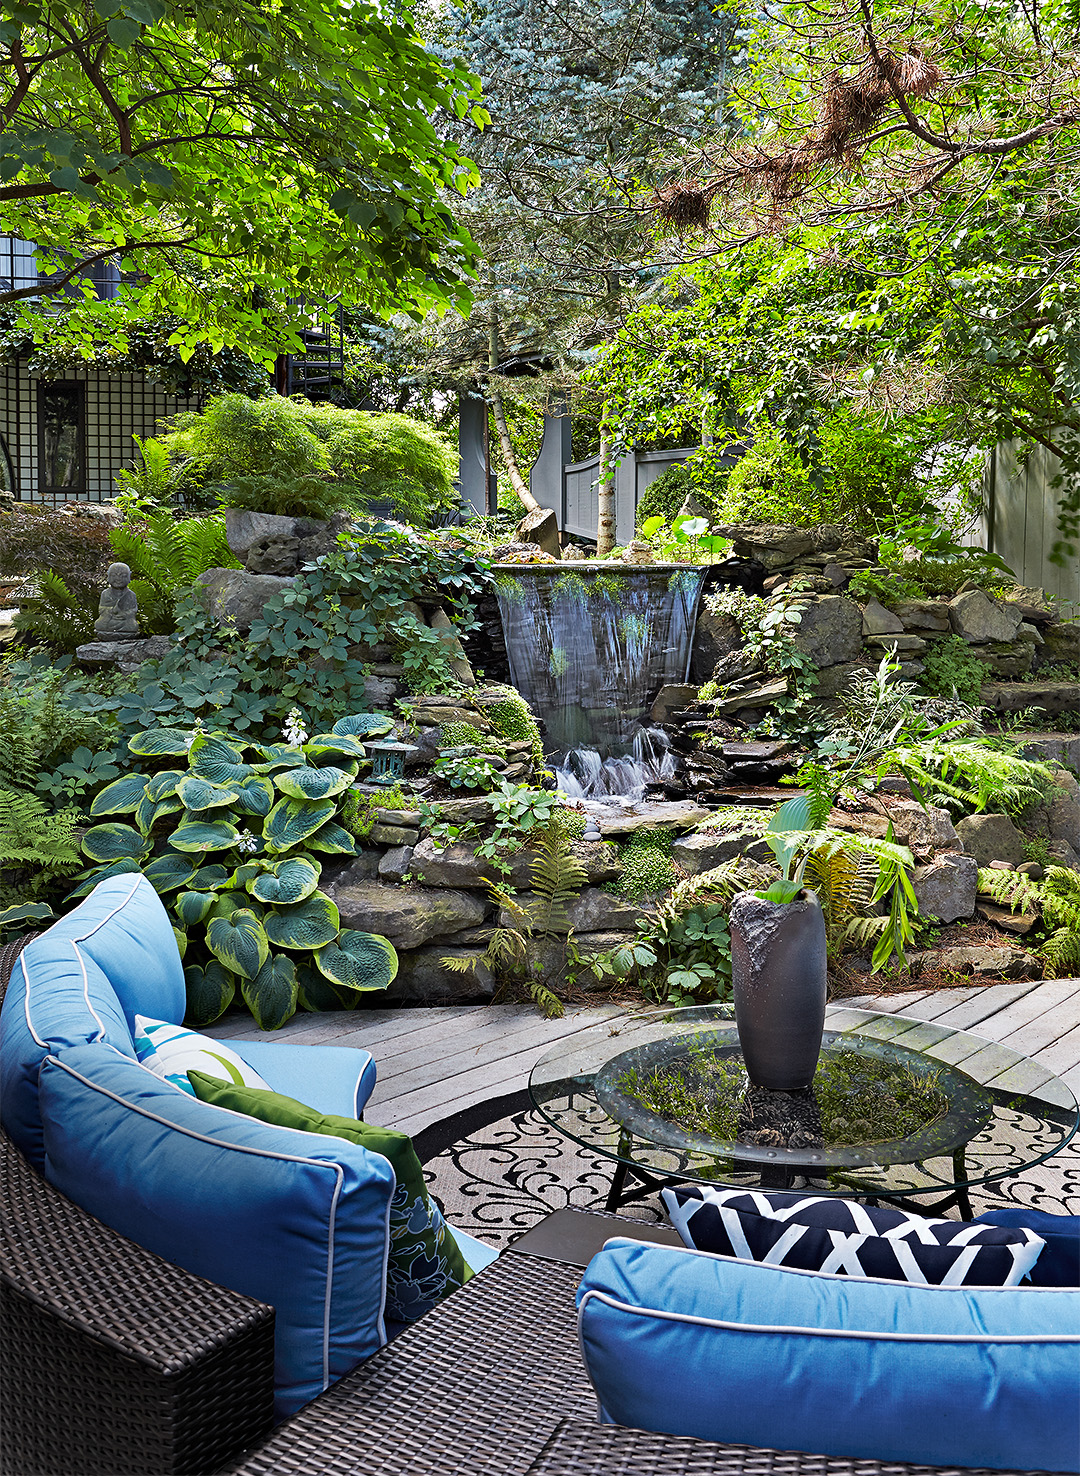 asian-style serenity garden blue seating green landscape